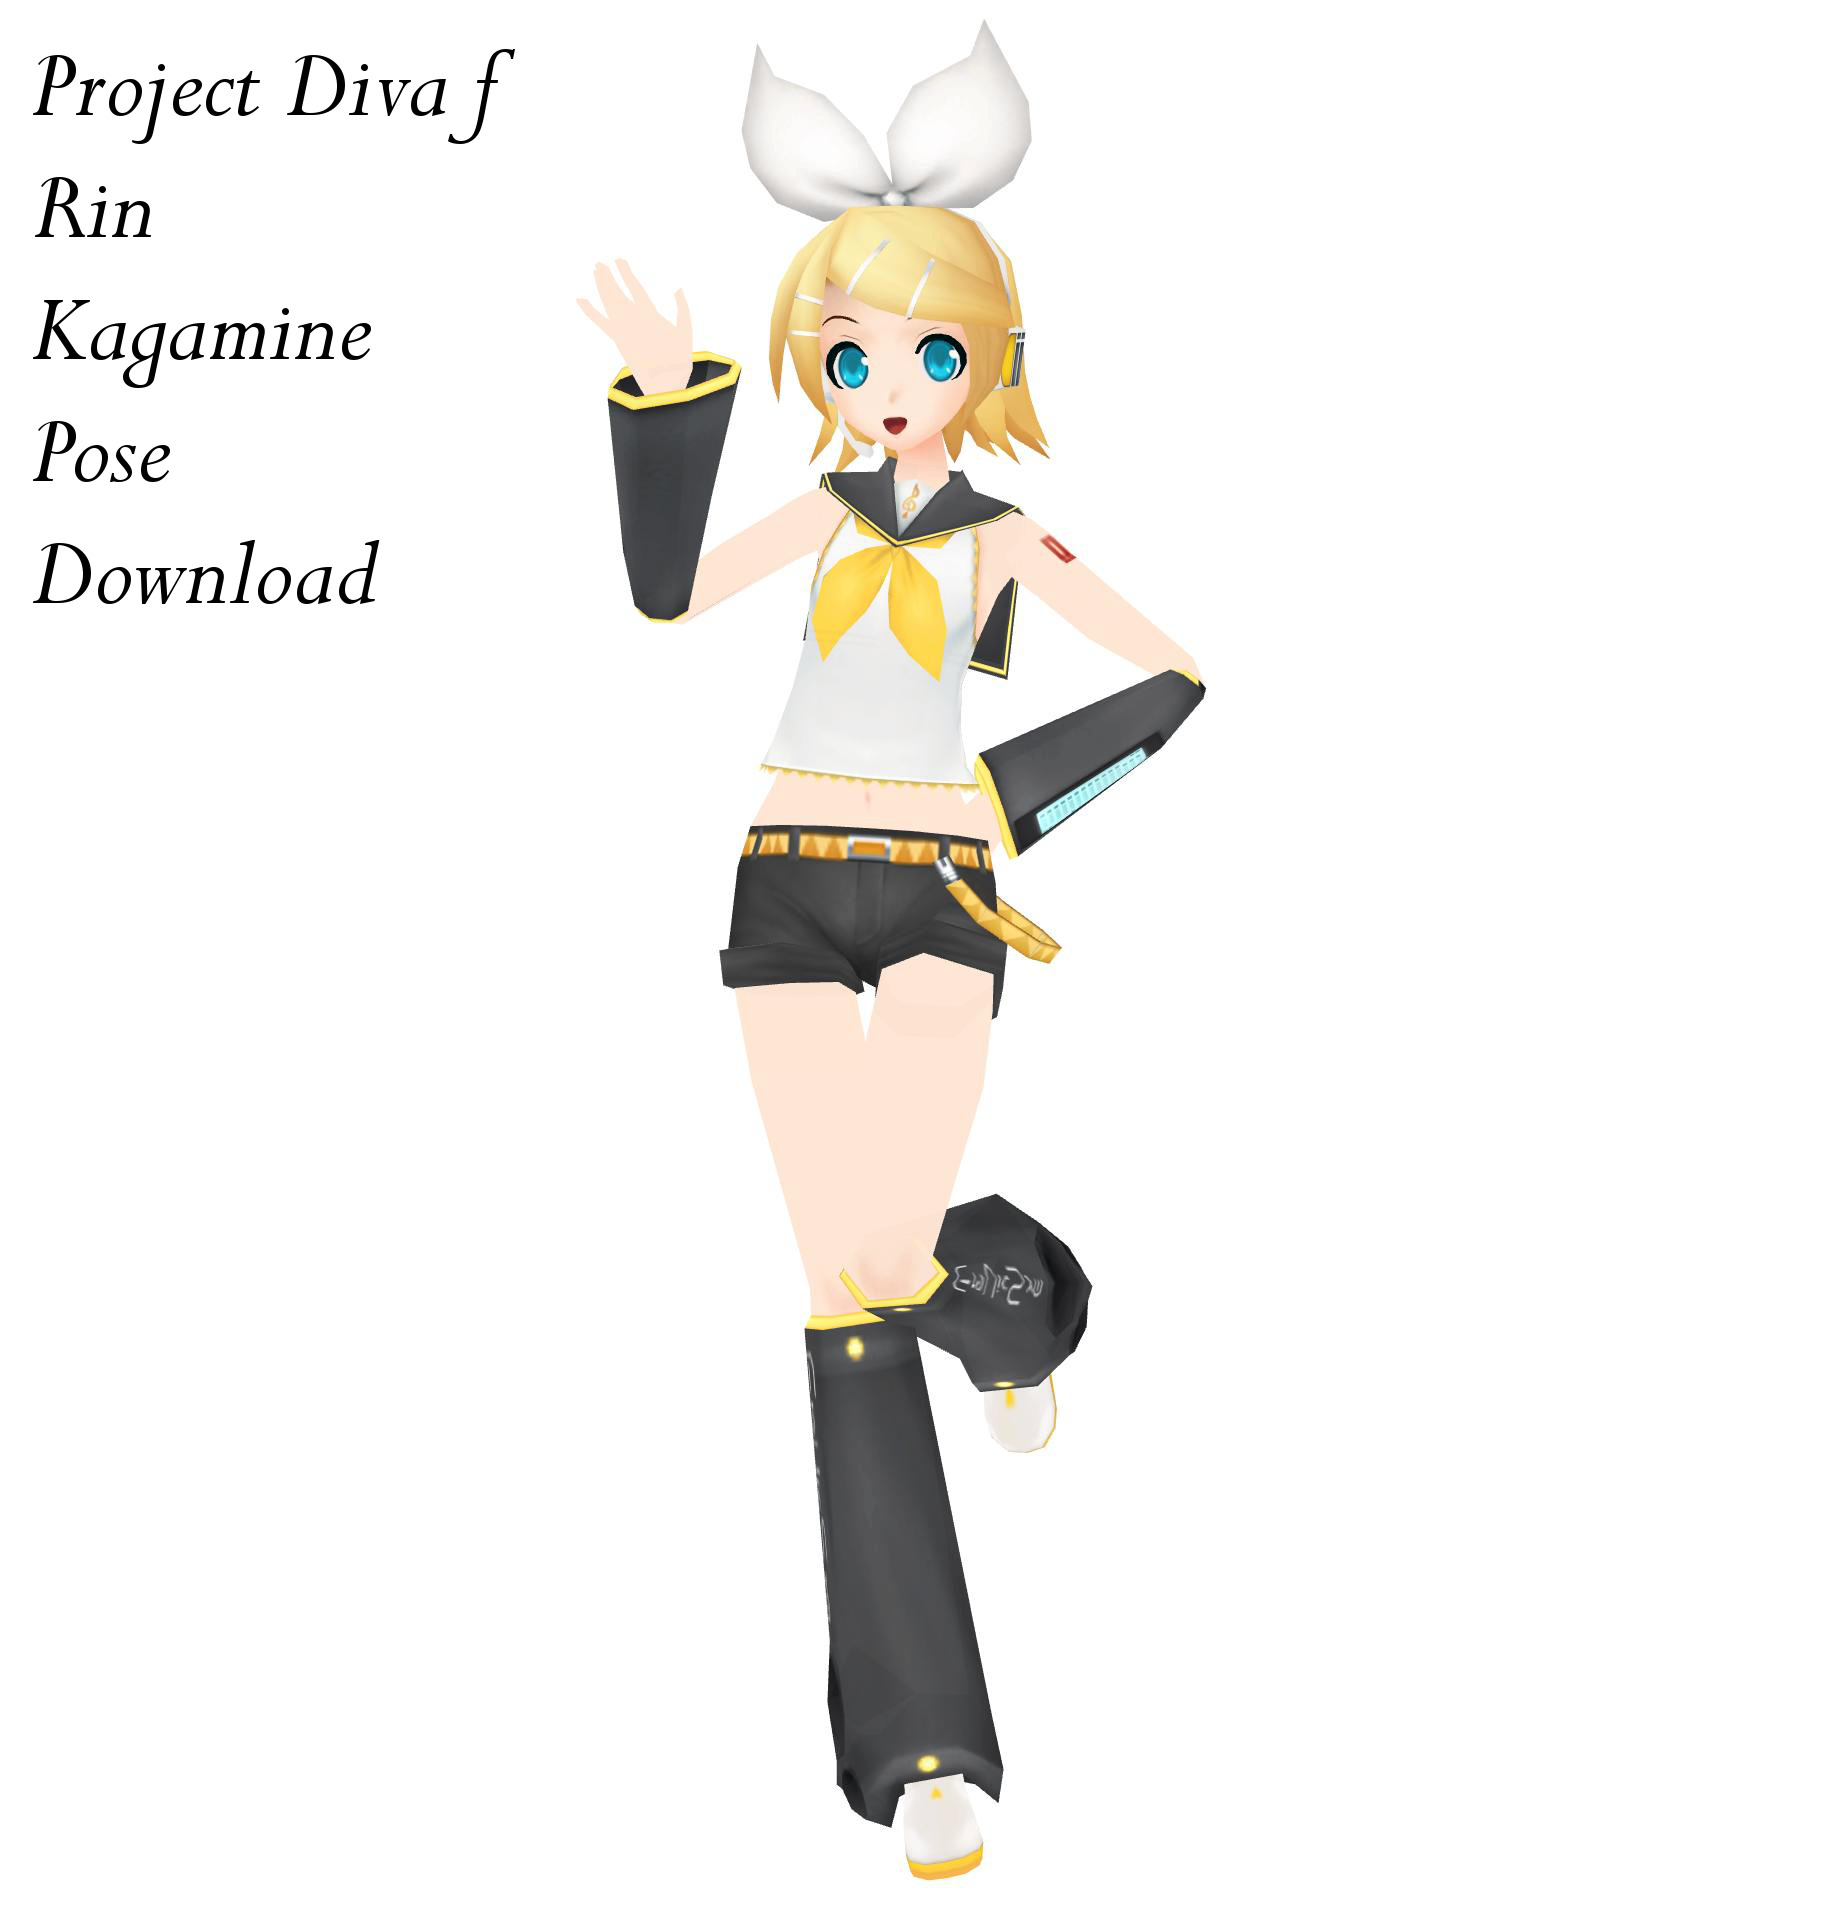 Project diva f rin kagamine pose download by reon046 on - Kagamine rin project diva ...